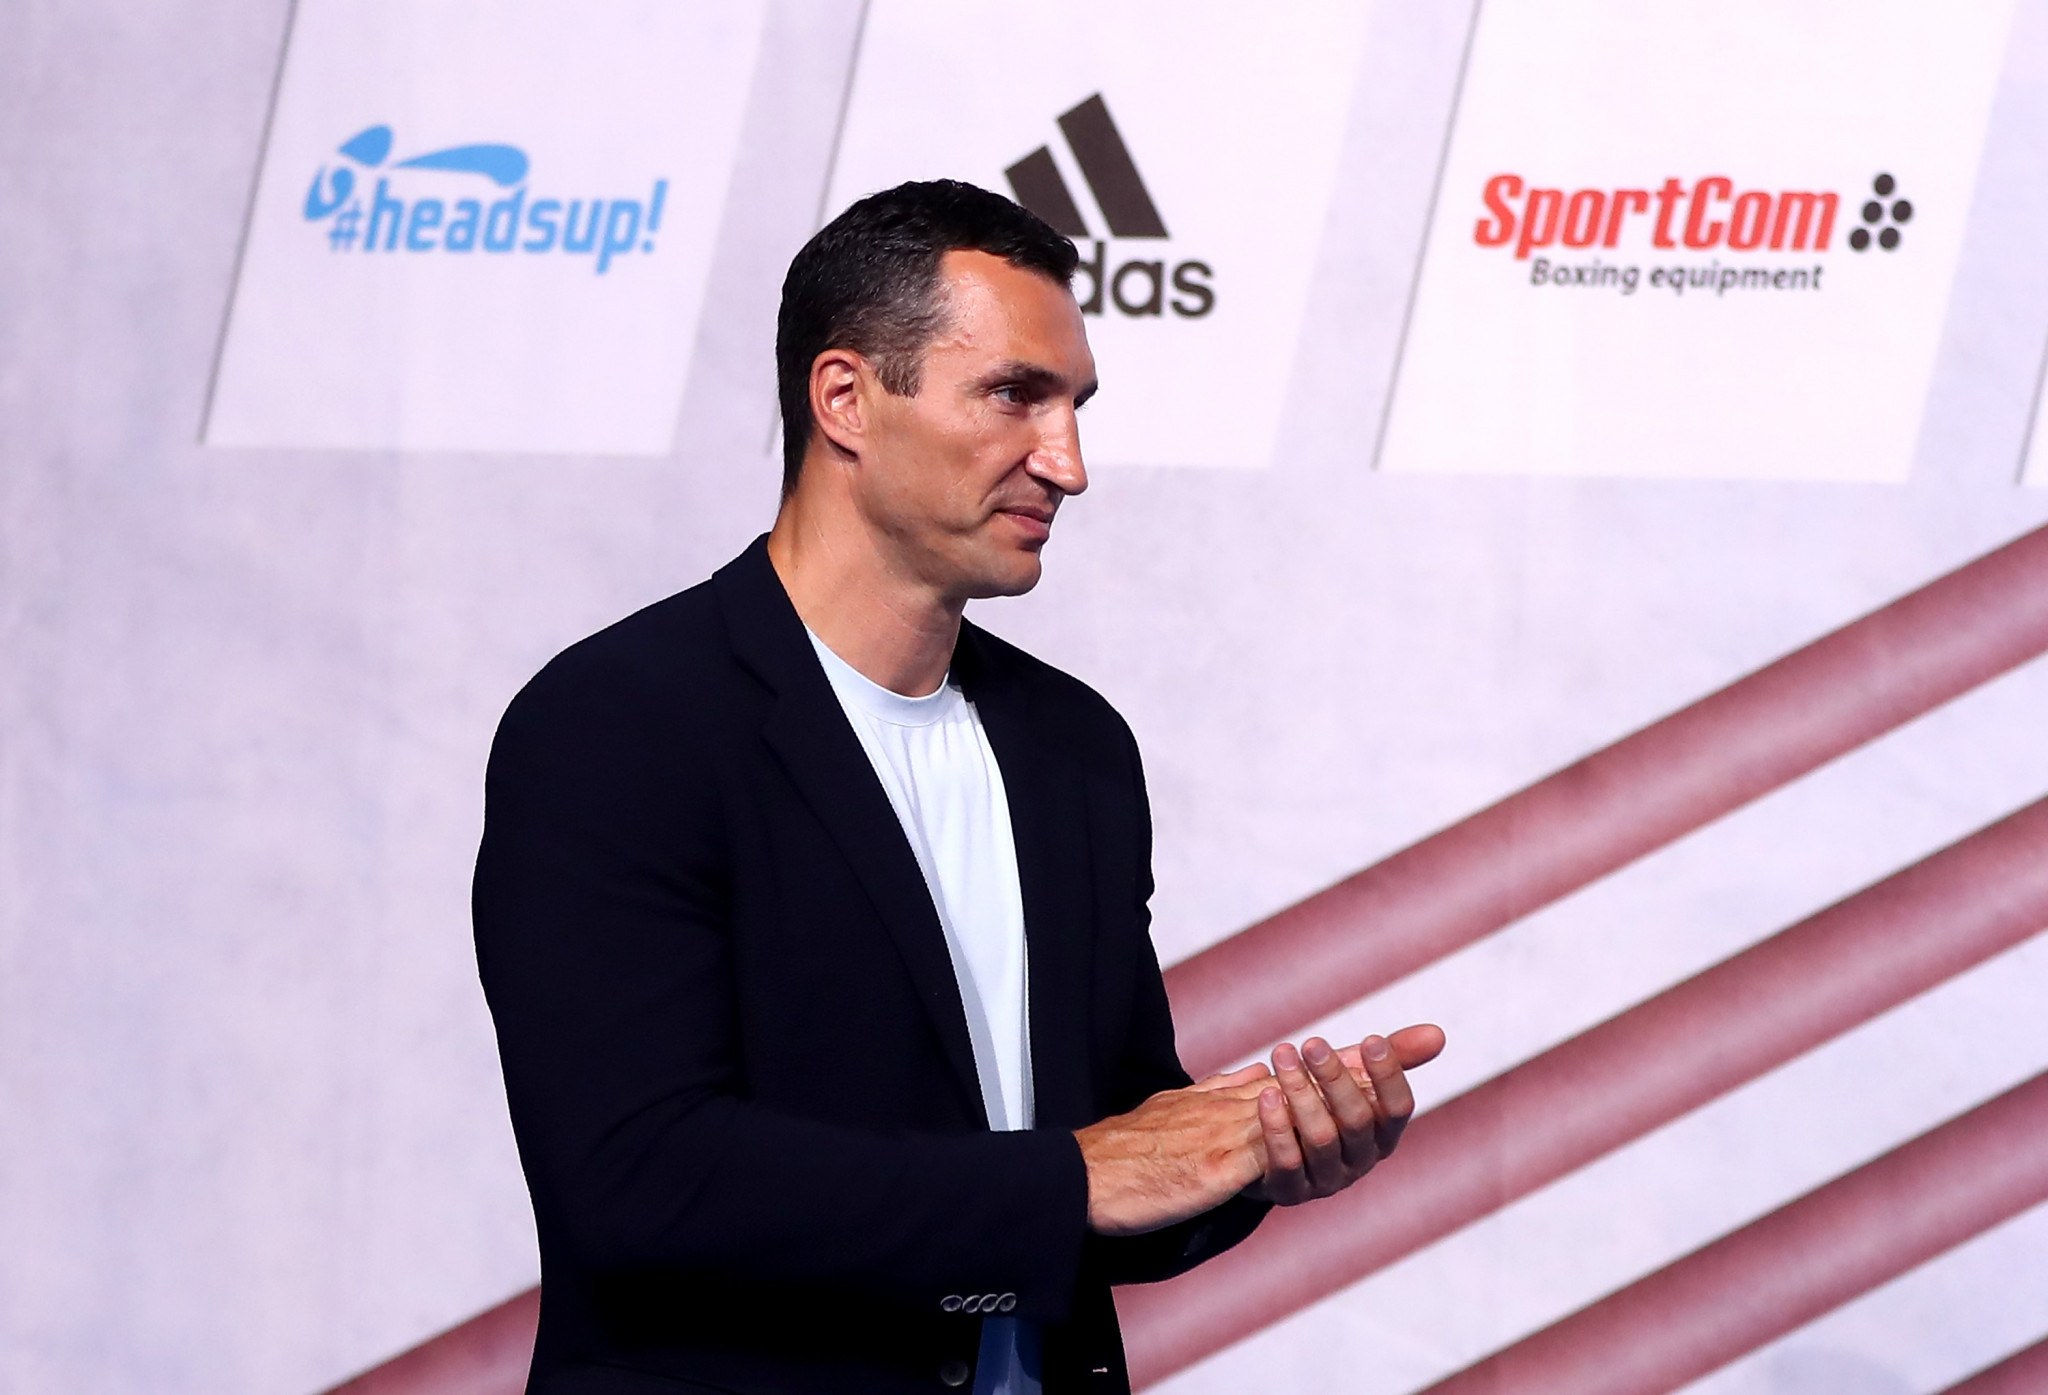 It remains possible that former world heavyweight champion Wladimir Klitschko could be involved in the Olympic boxing event at Tokyo 2020 ©Getty Images